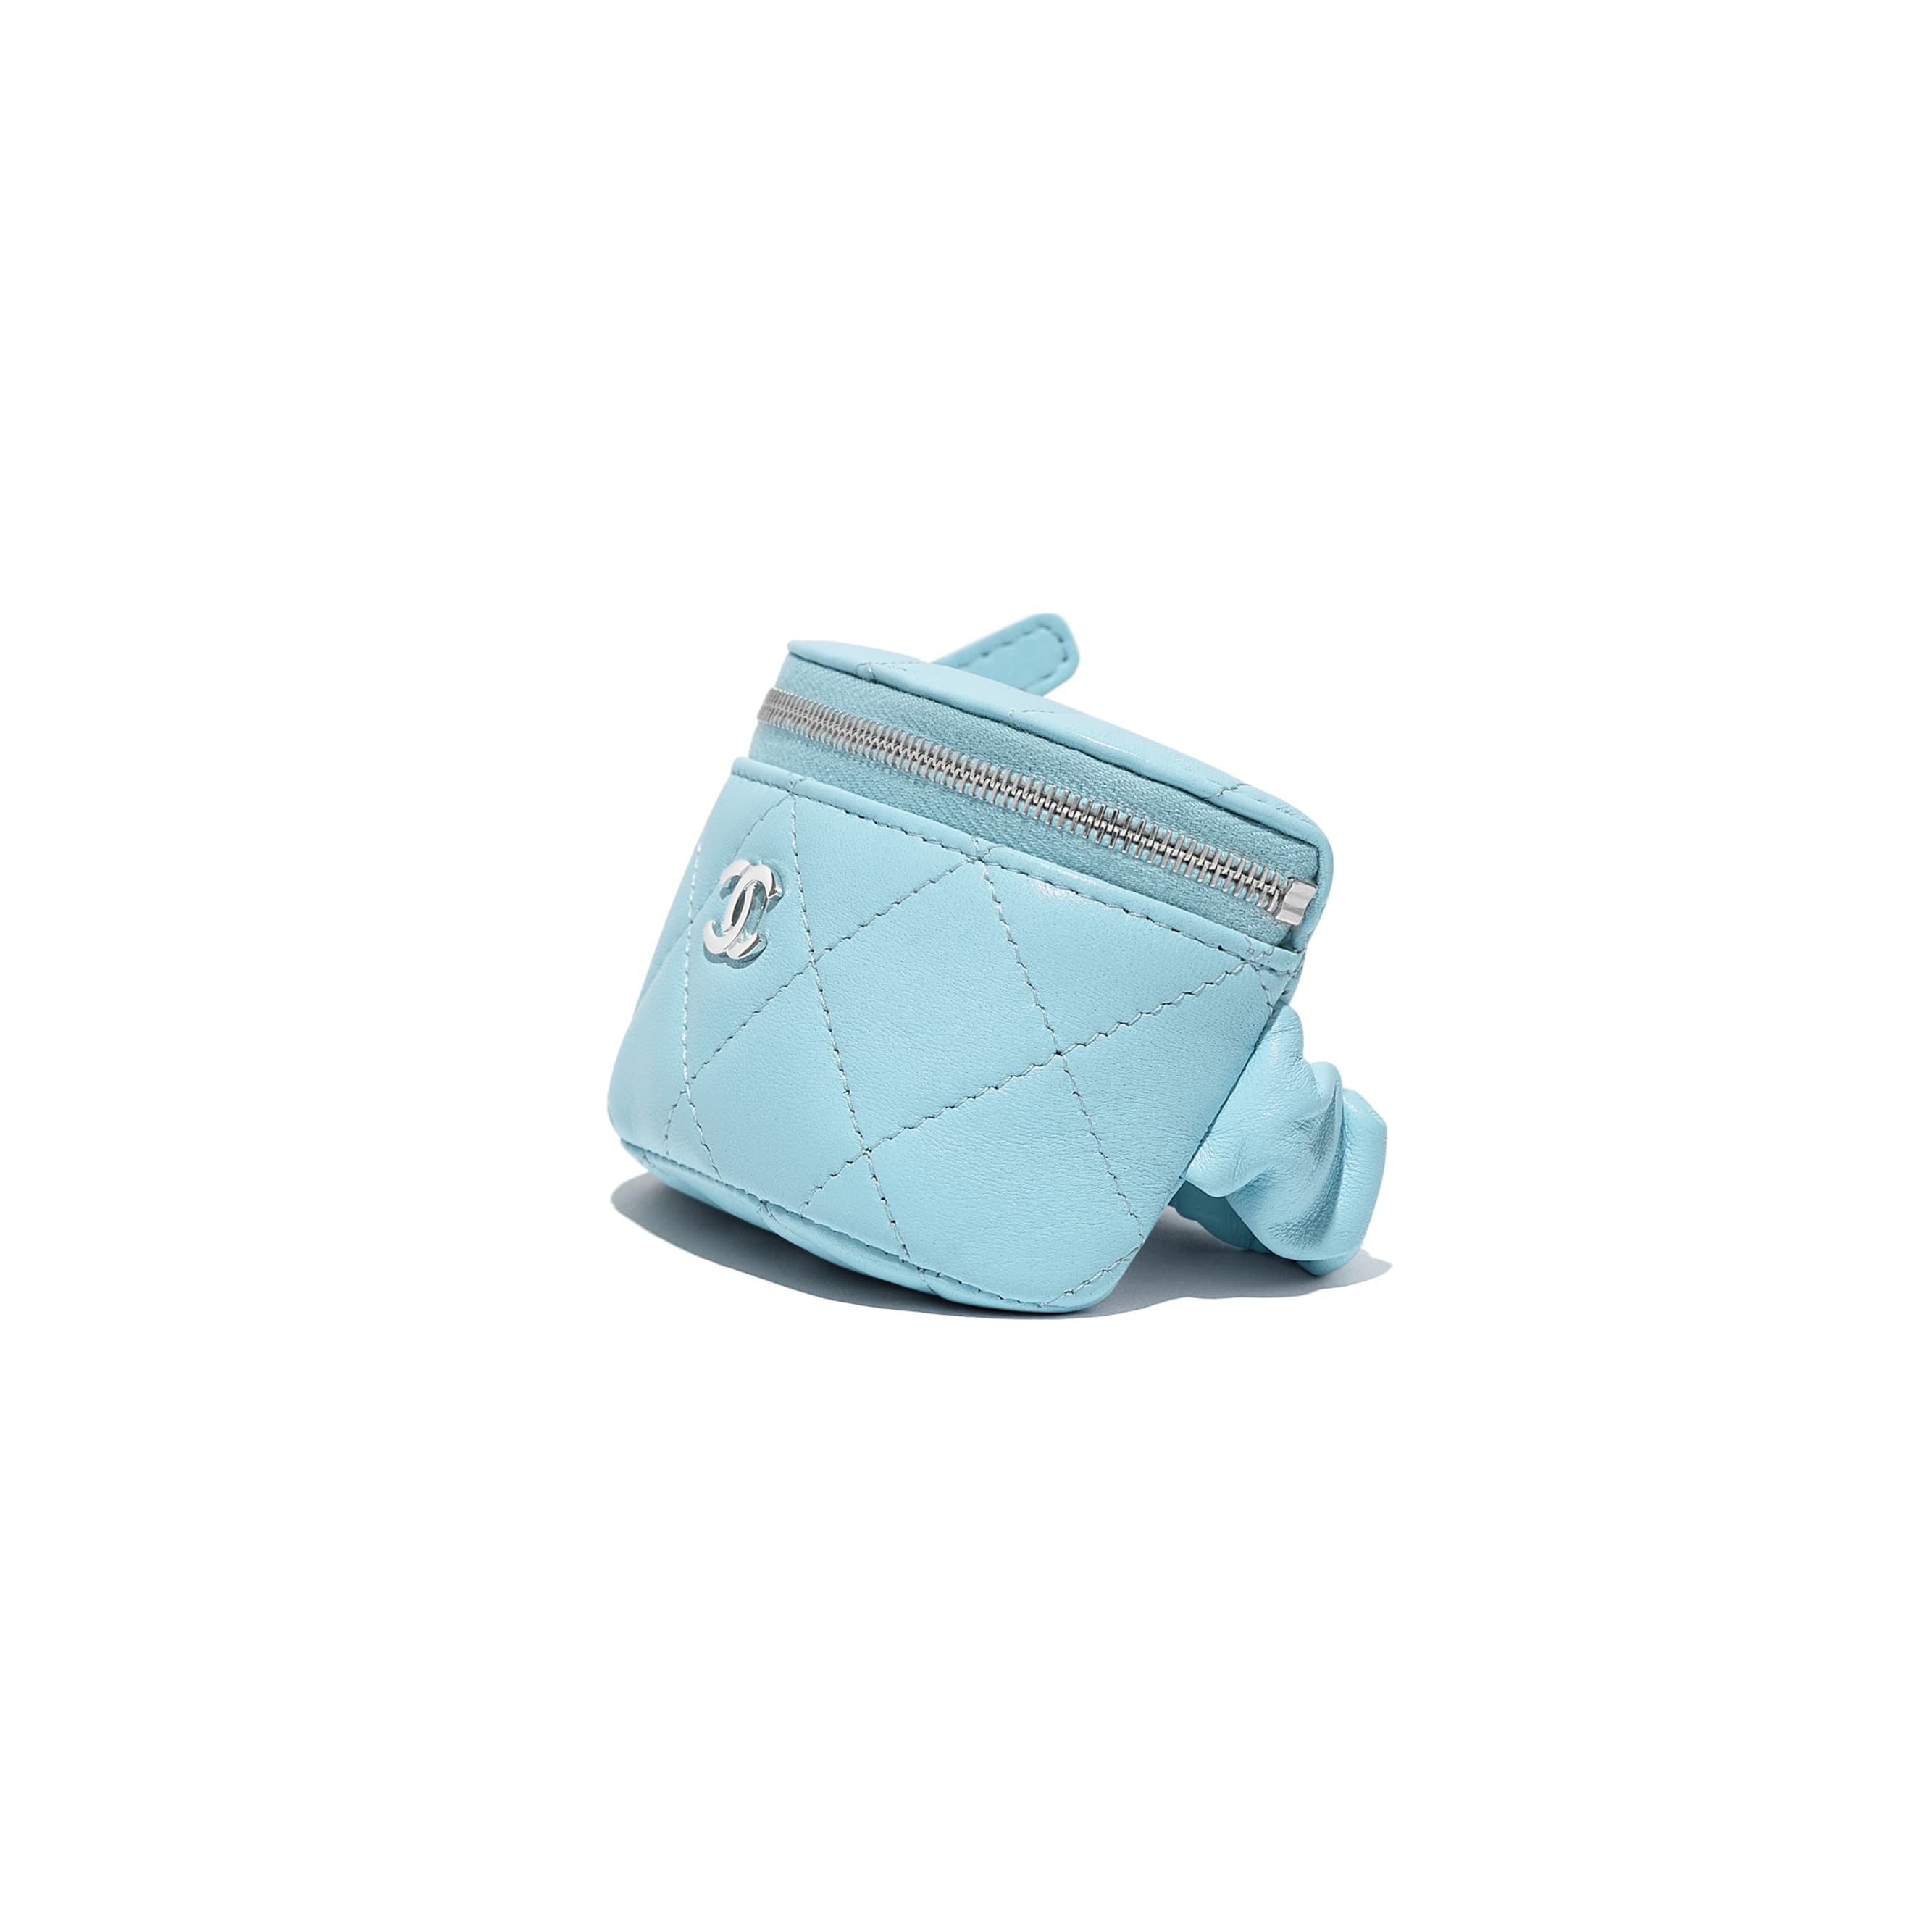 Arm Coin Purse - Neon Blue - Lambskin - CHANEL - Extra view - see standard sized version